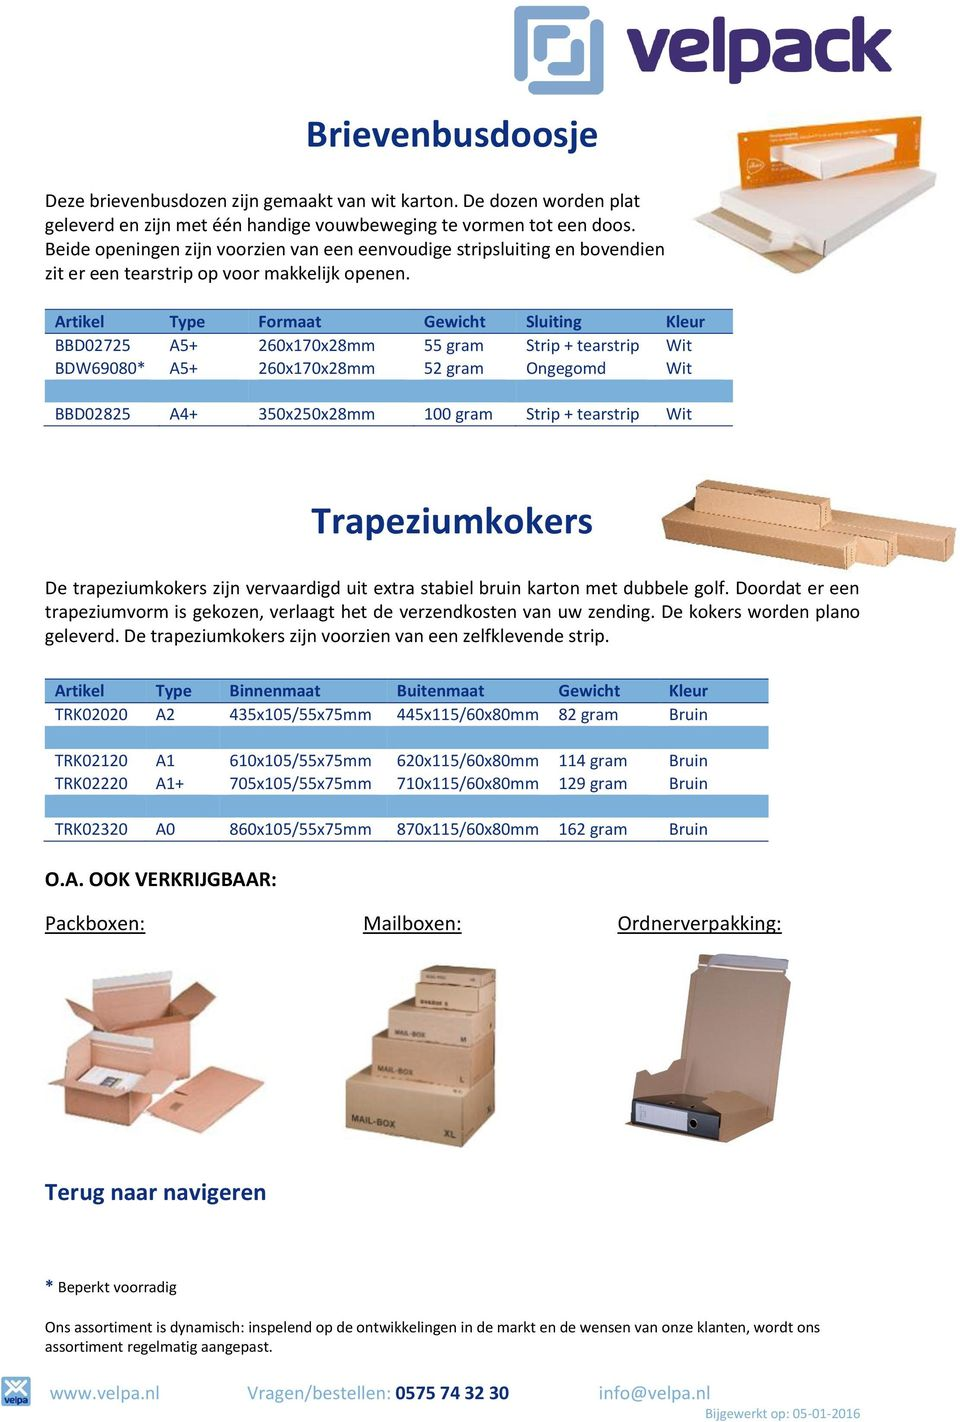 Artikel Type Formaat Gewicht Sluiting Kleur BBD02725 A5+ 260x170x28mm 55 gram Strip + tearstrip Wit BDW69080* A5+ 260x170x28mm 52 gram Ongegomd Wit BBD02825 A4+ 350x250x28mm 100 gram Strip +